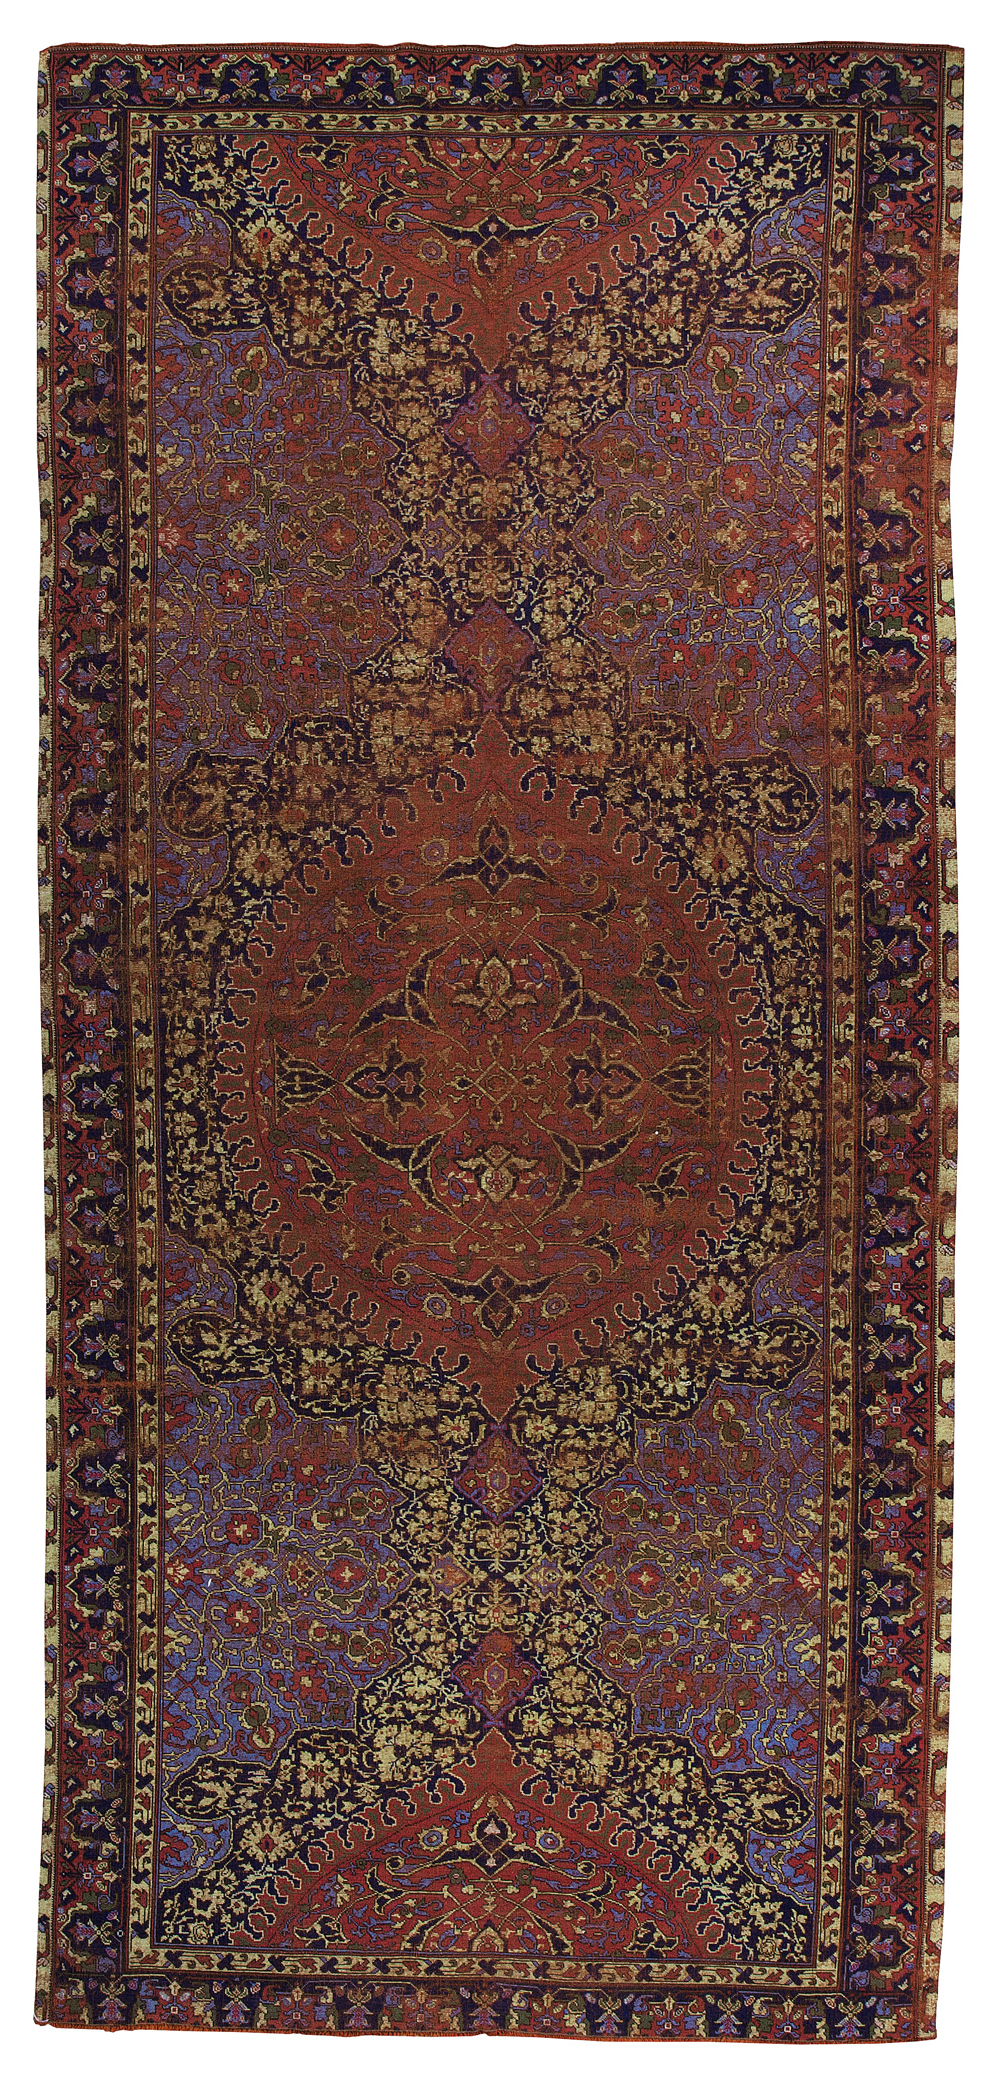 An unusually small Oushak Medallion carpet, West Anatolia, Sotheby's